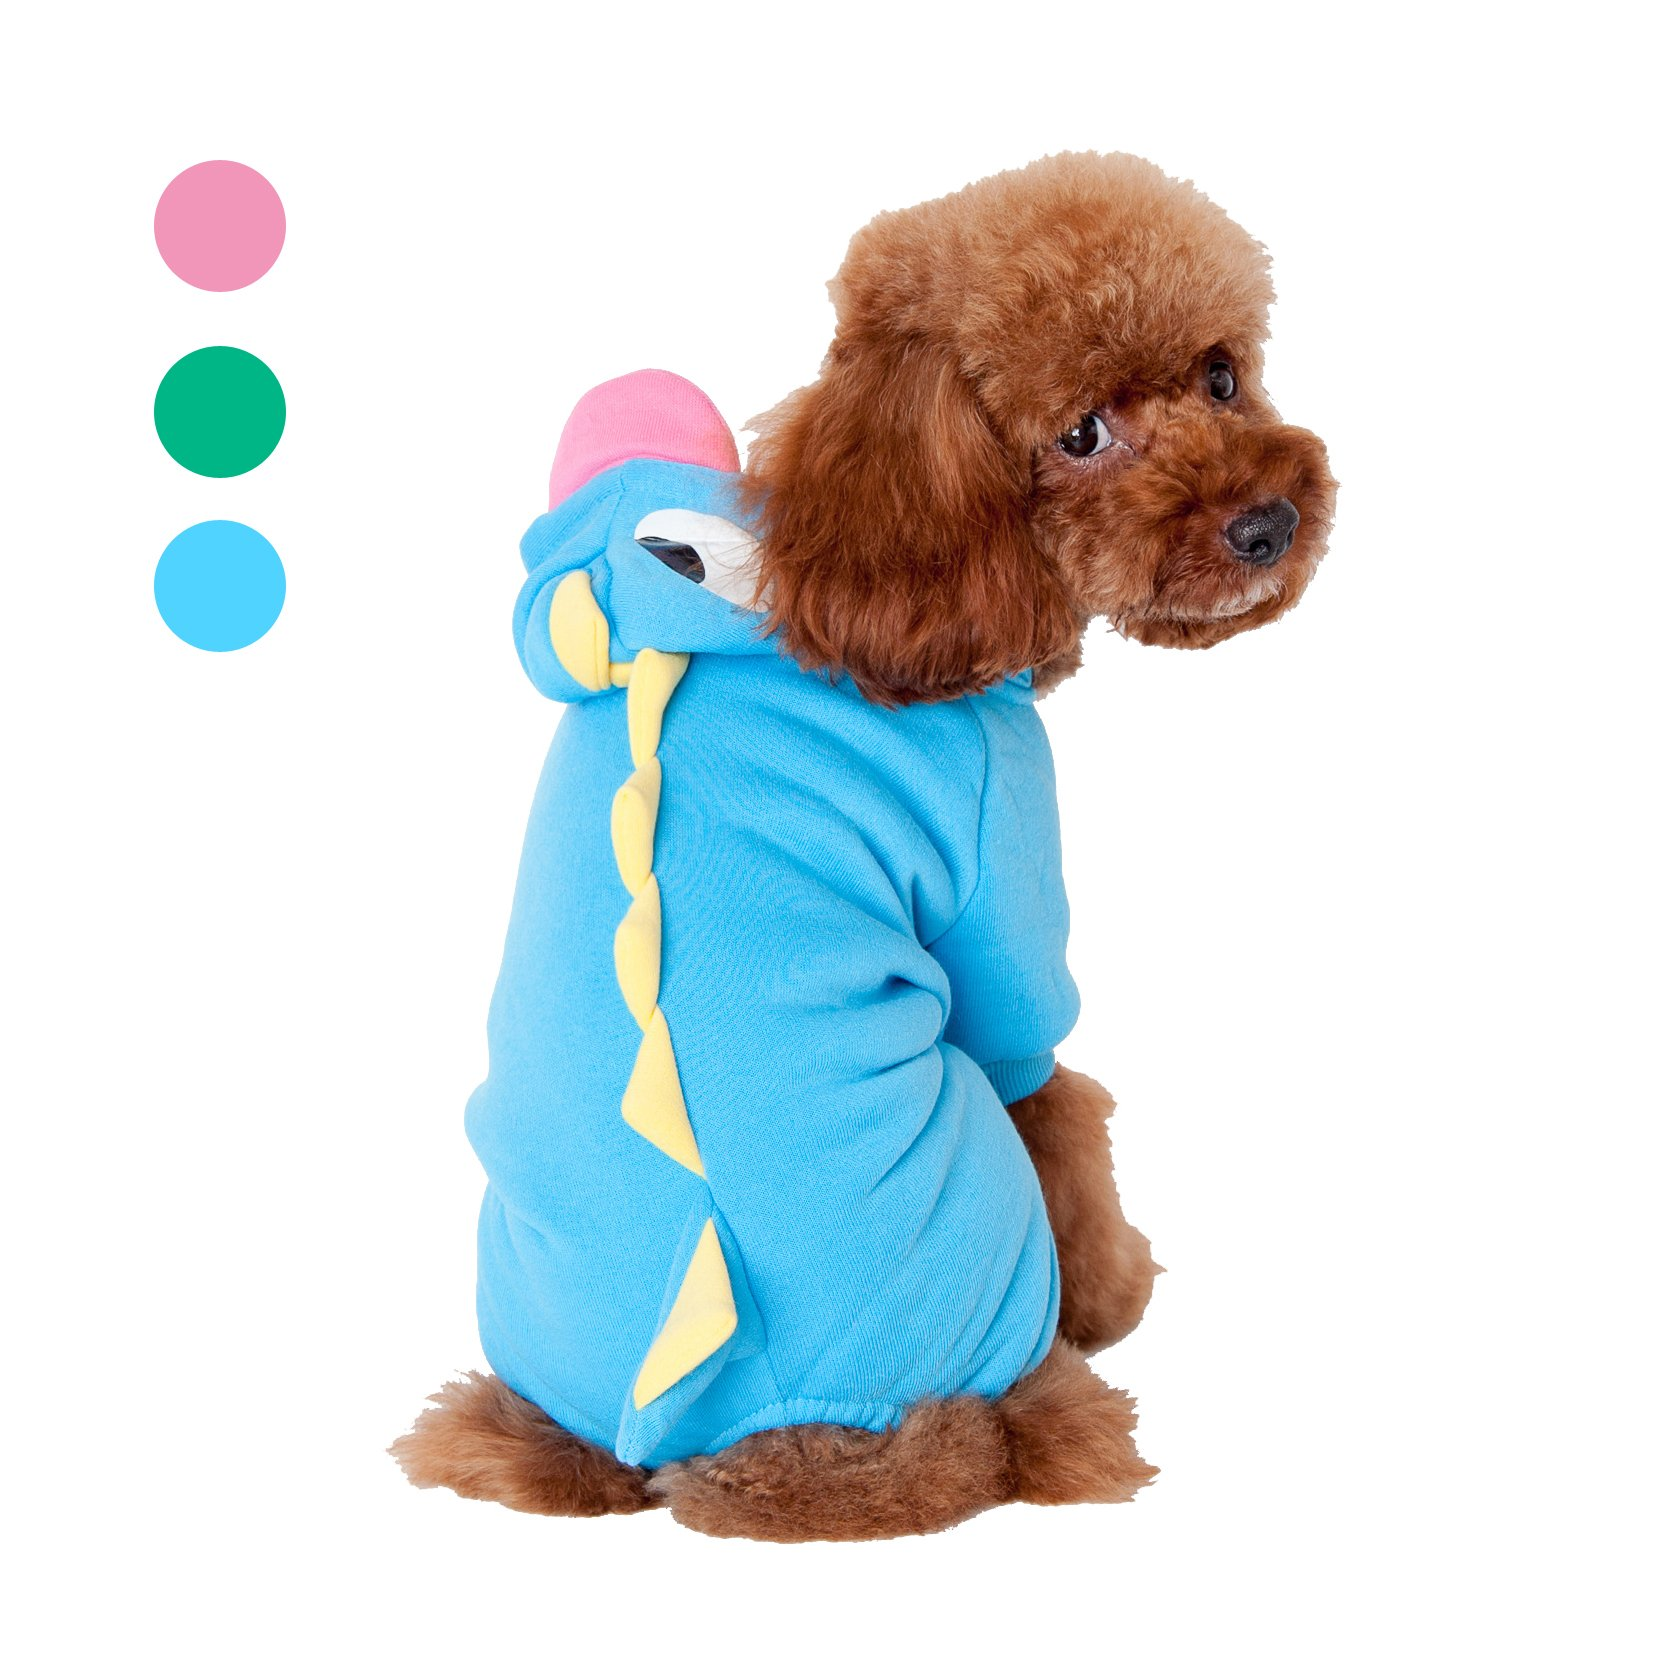 GabeFish Dog Funny Dinosaur Animal 4 Legs Cotumes Hoody Button Hoodies For Puppy Small Medium Pets Cute Winter Coats Blue X-Large